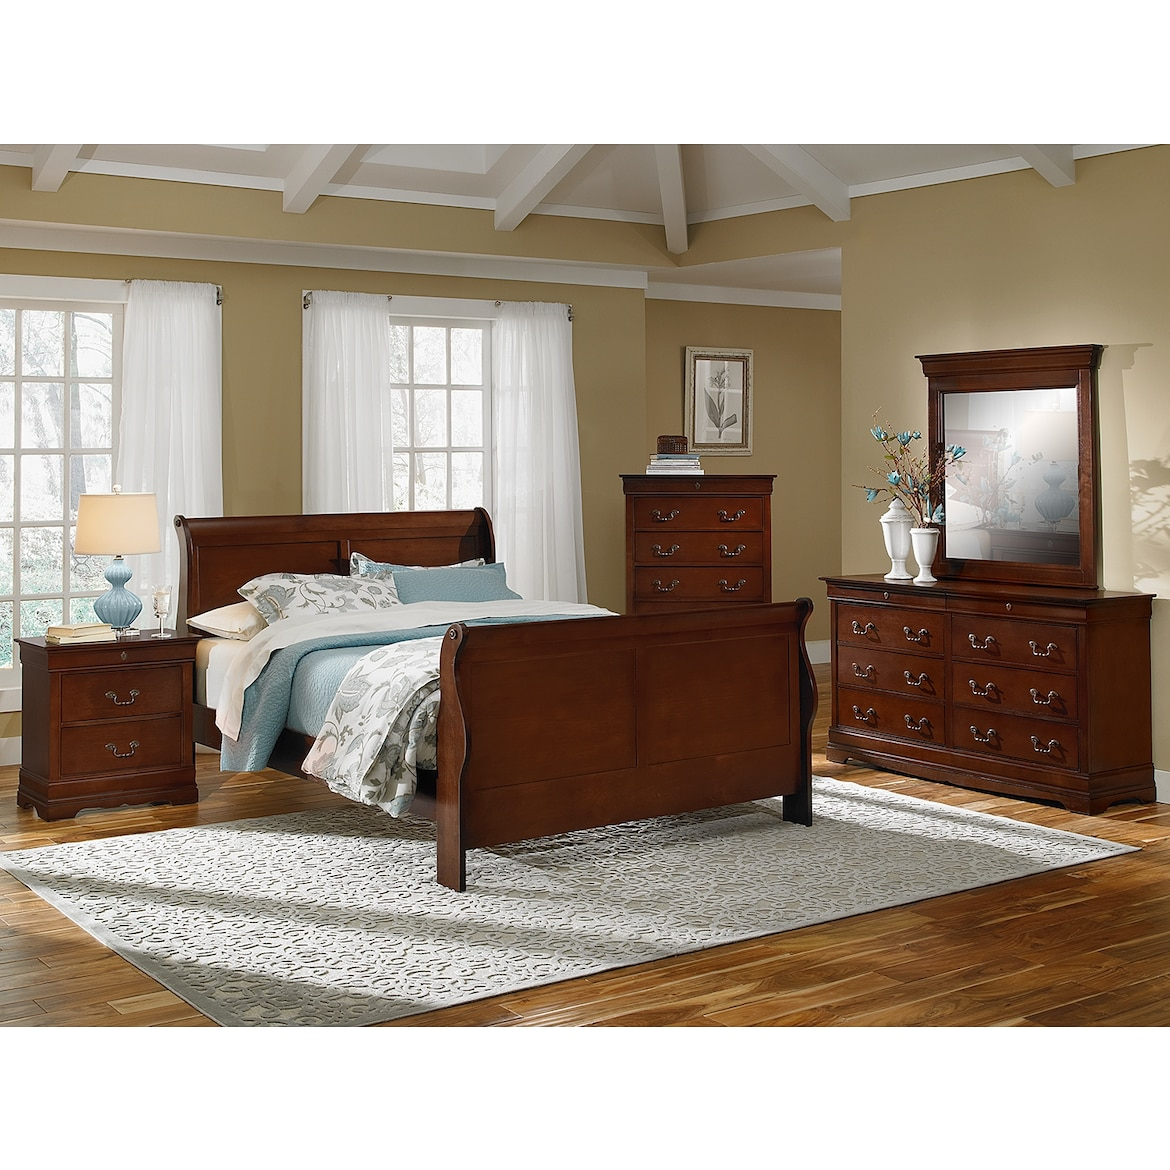 . Neo Classic Bed